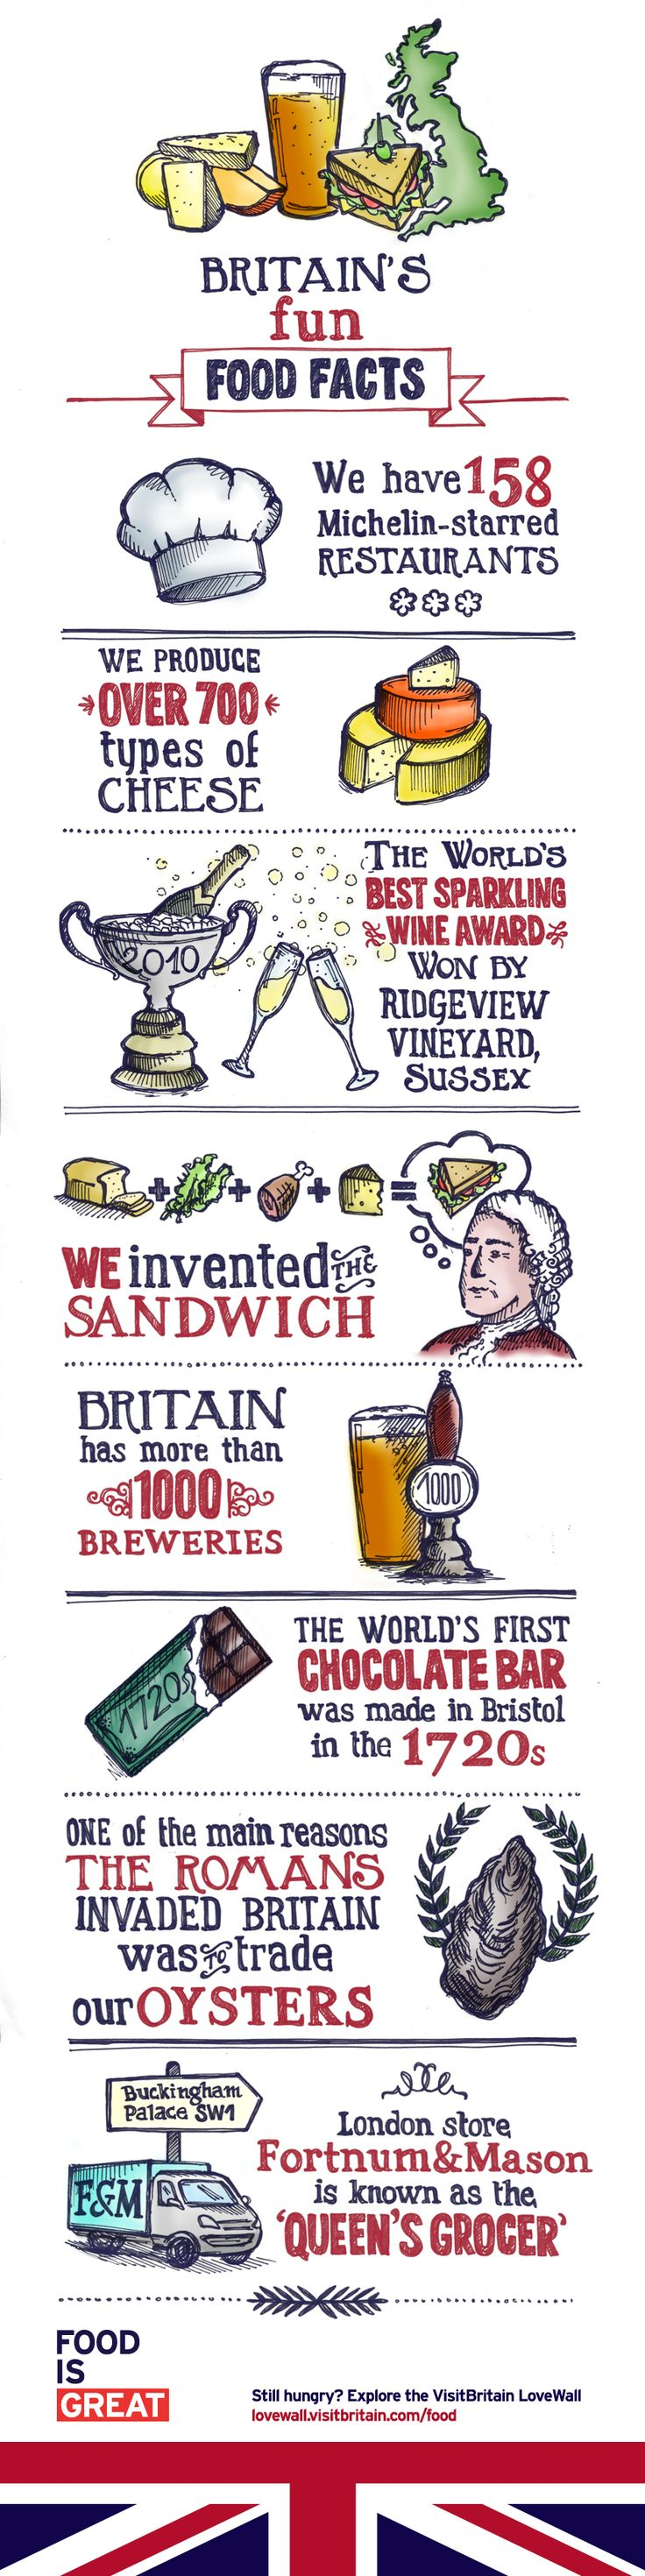 Fun British food facts!